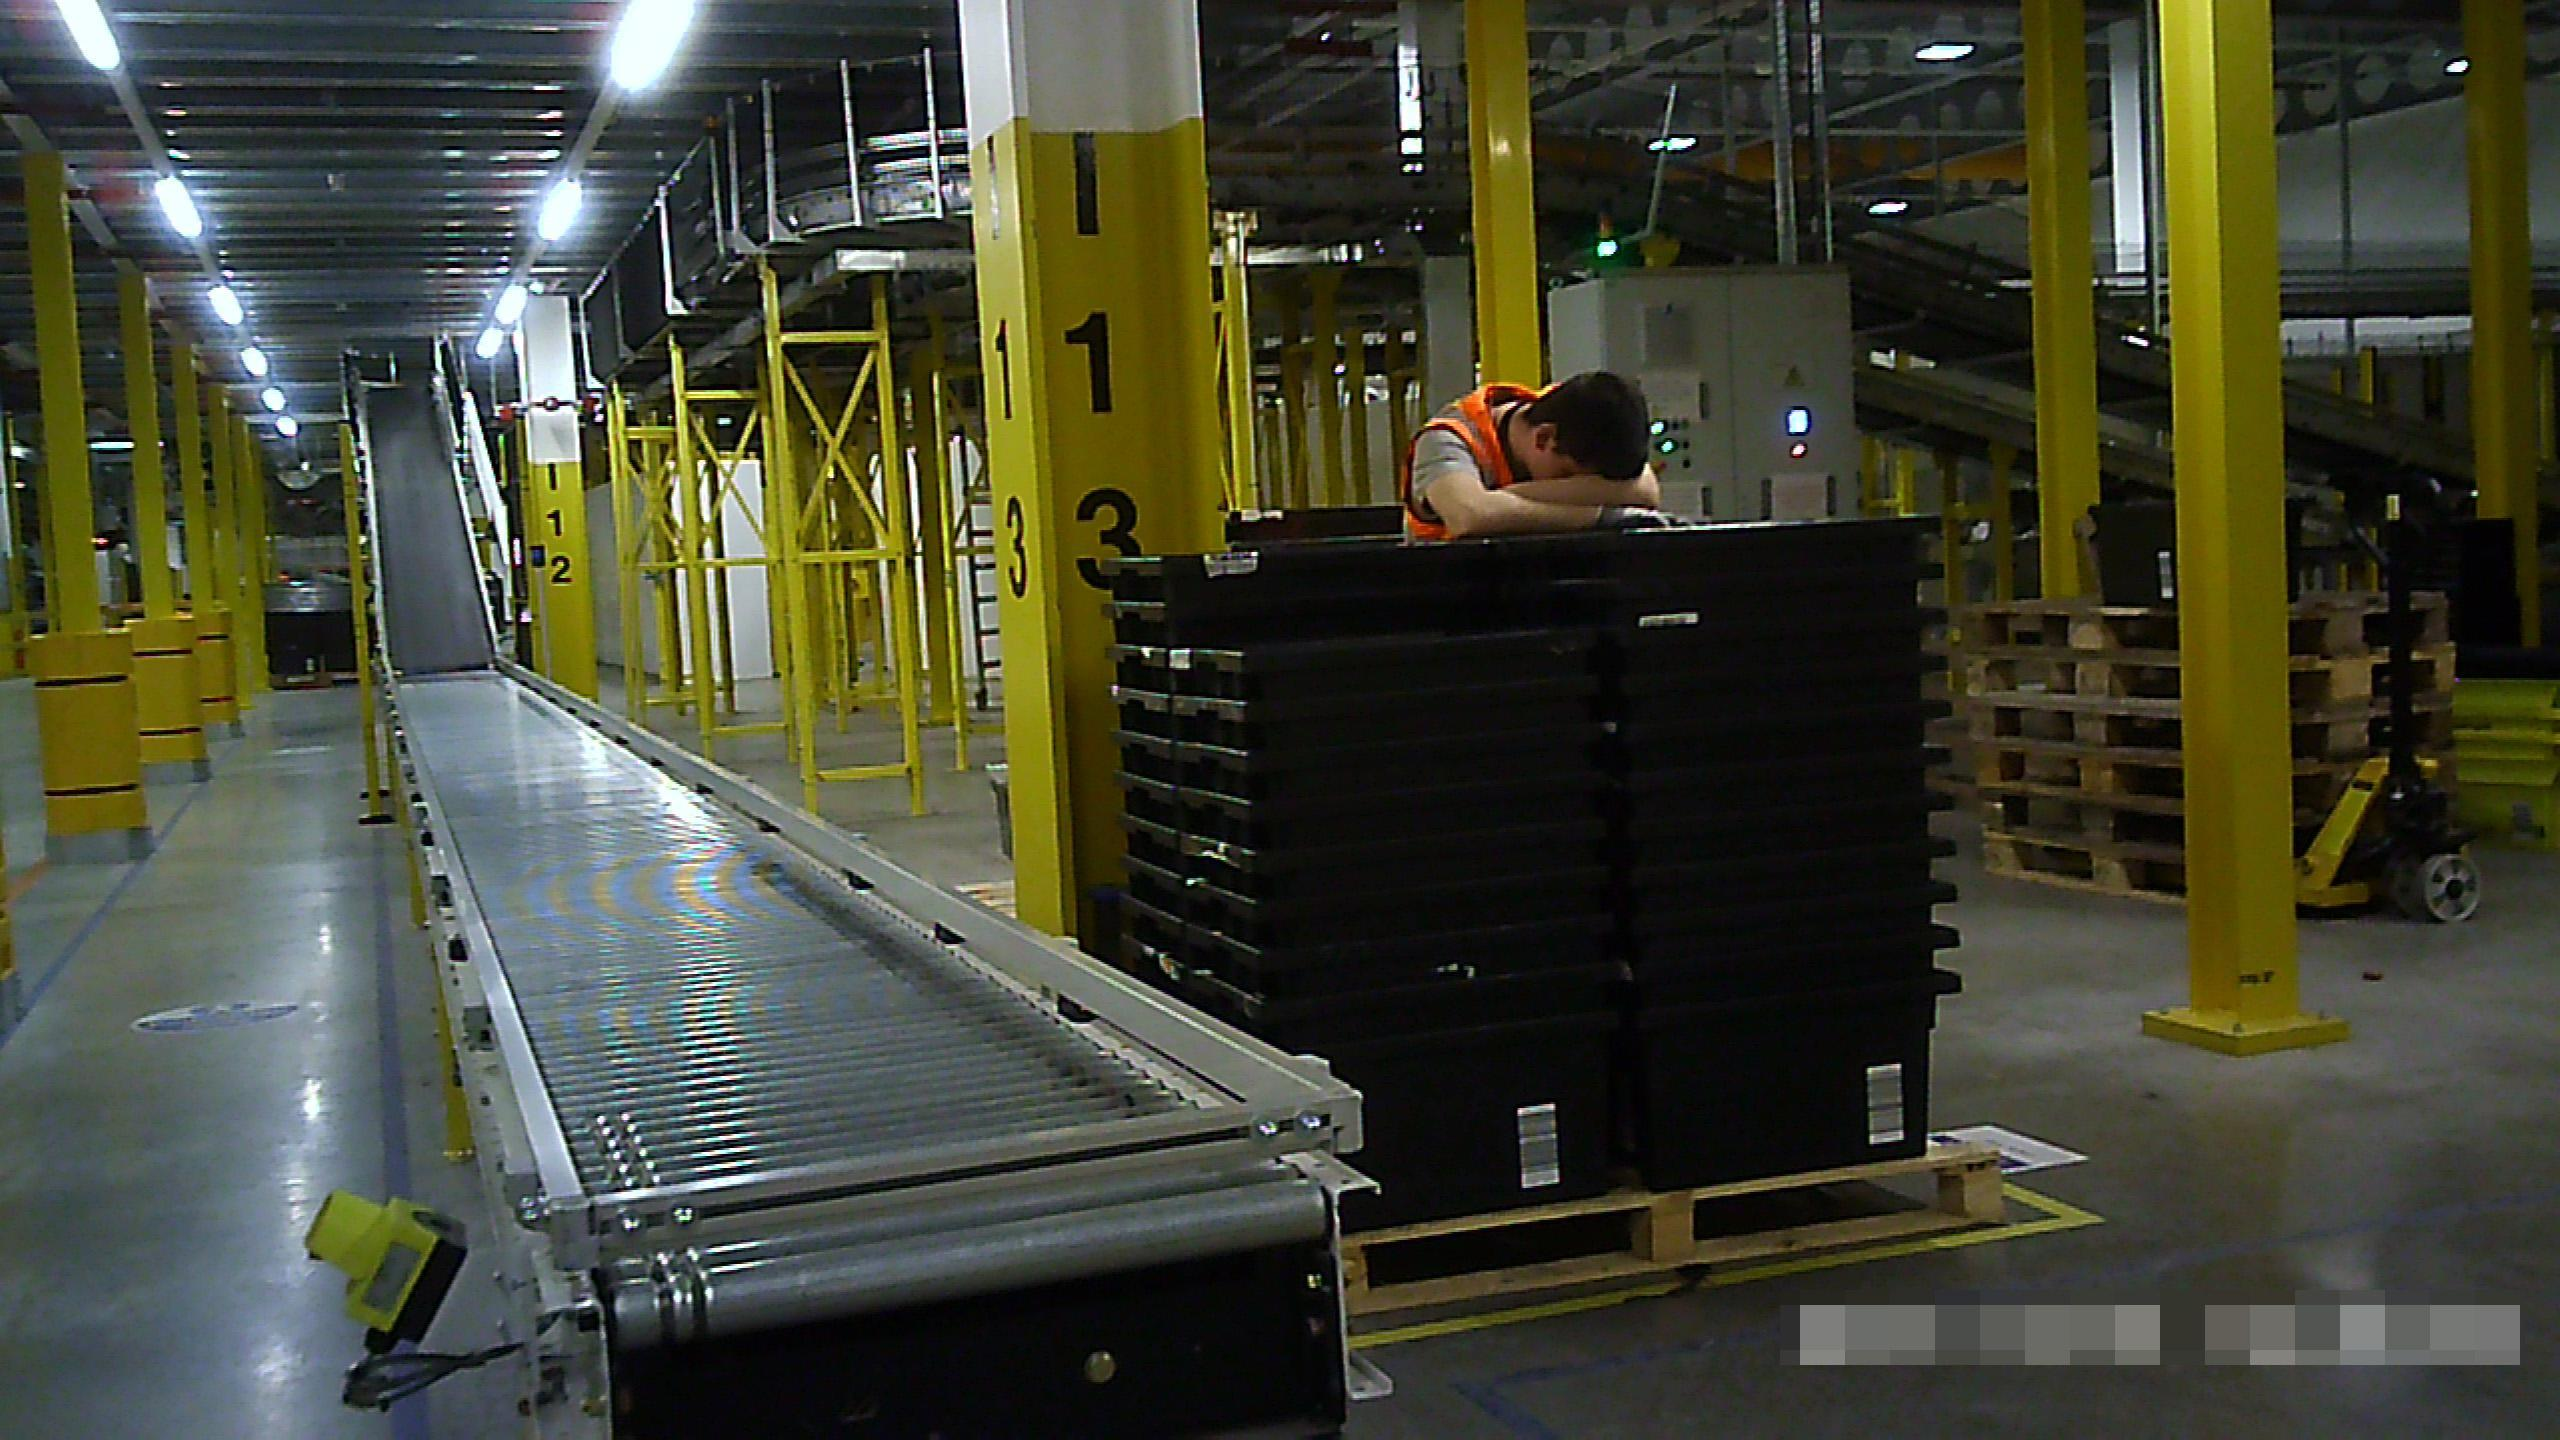 d165b57d9e4f55f5b52a04b8f20ae78a Amazon 'gives warehouse workers mini CHOCOLATES' after brutal working conditions revealed